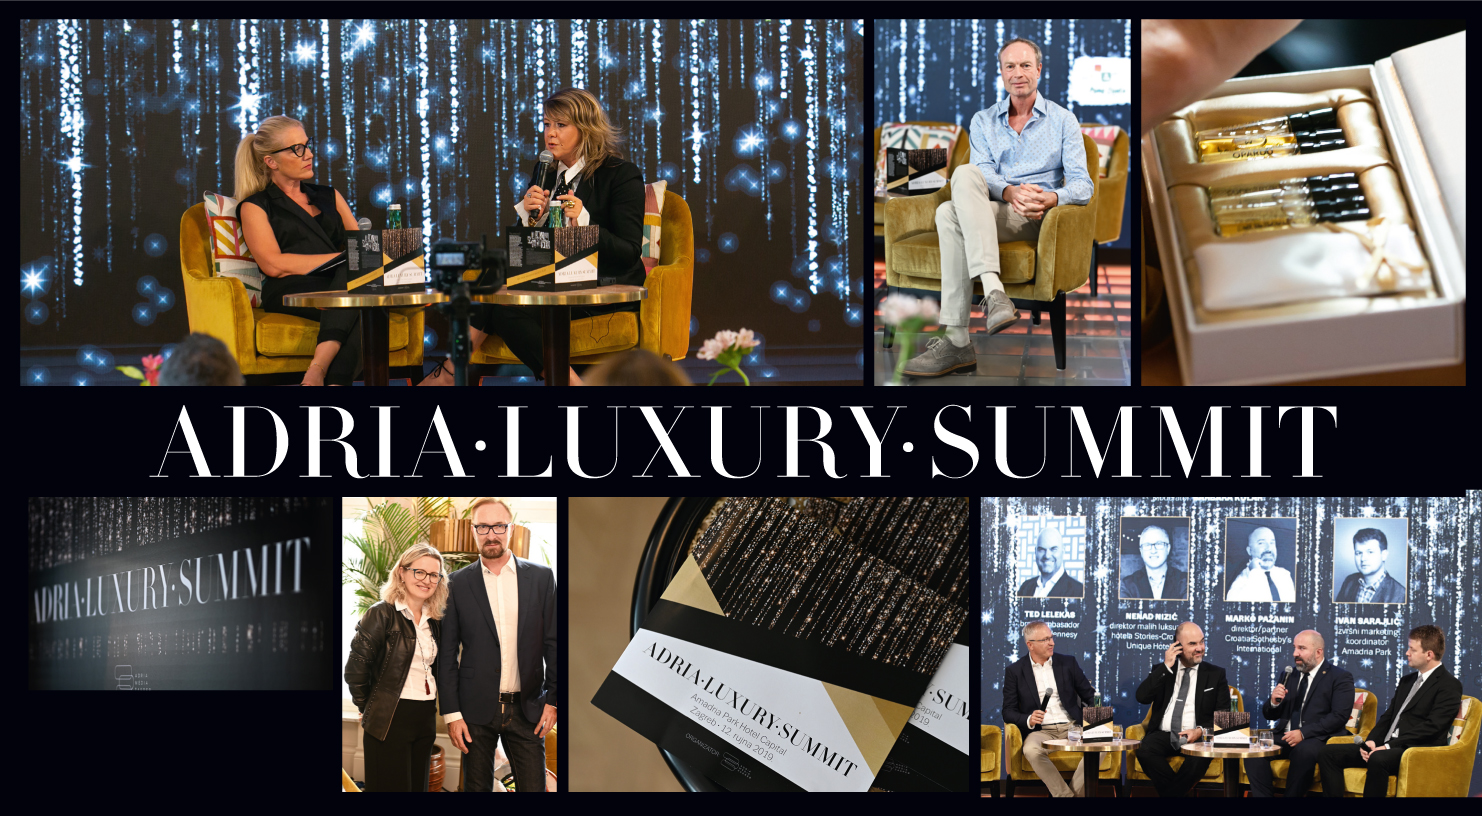 Adria Luxury Summit